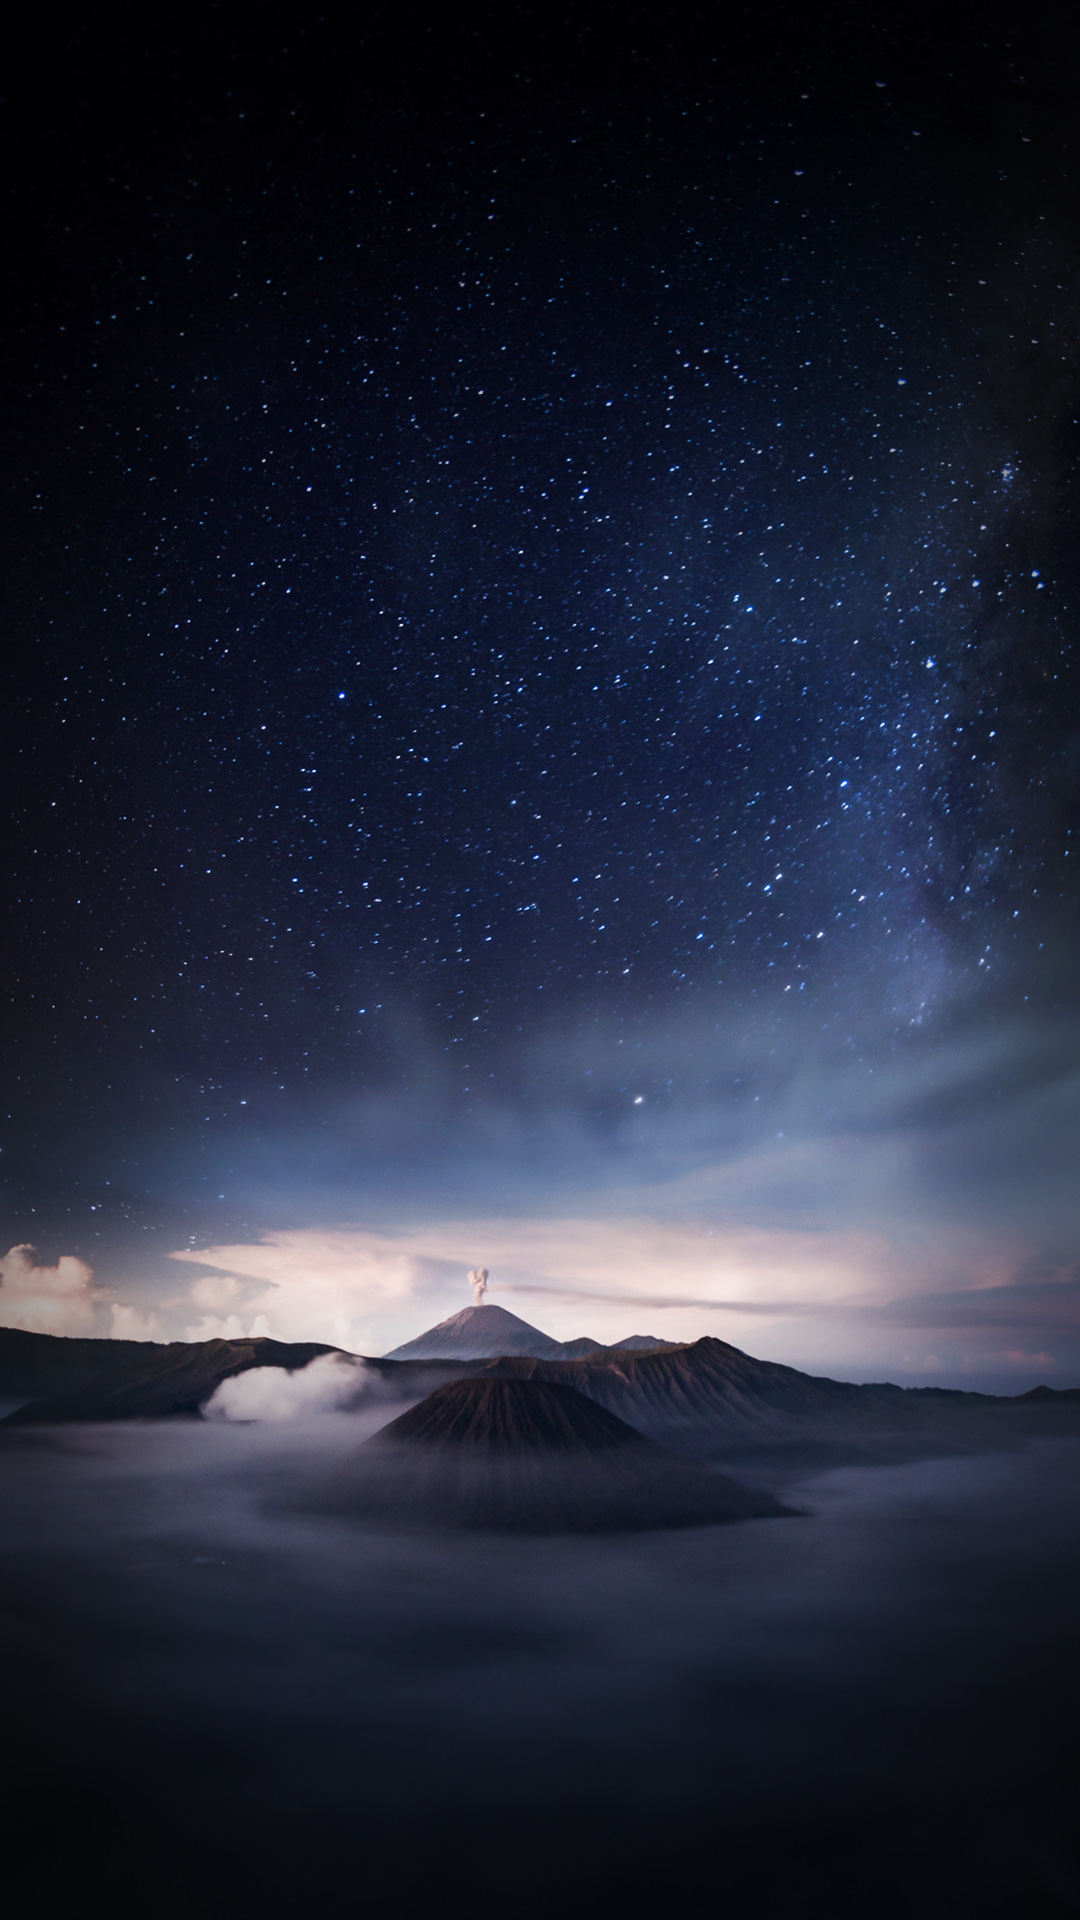 Iphone 壁紙 夜空 高 画質 壁紙 1080x19 Download Hd Wallpaper Wallpapertip